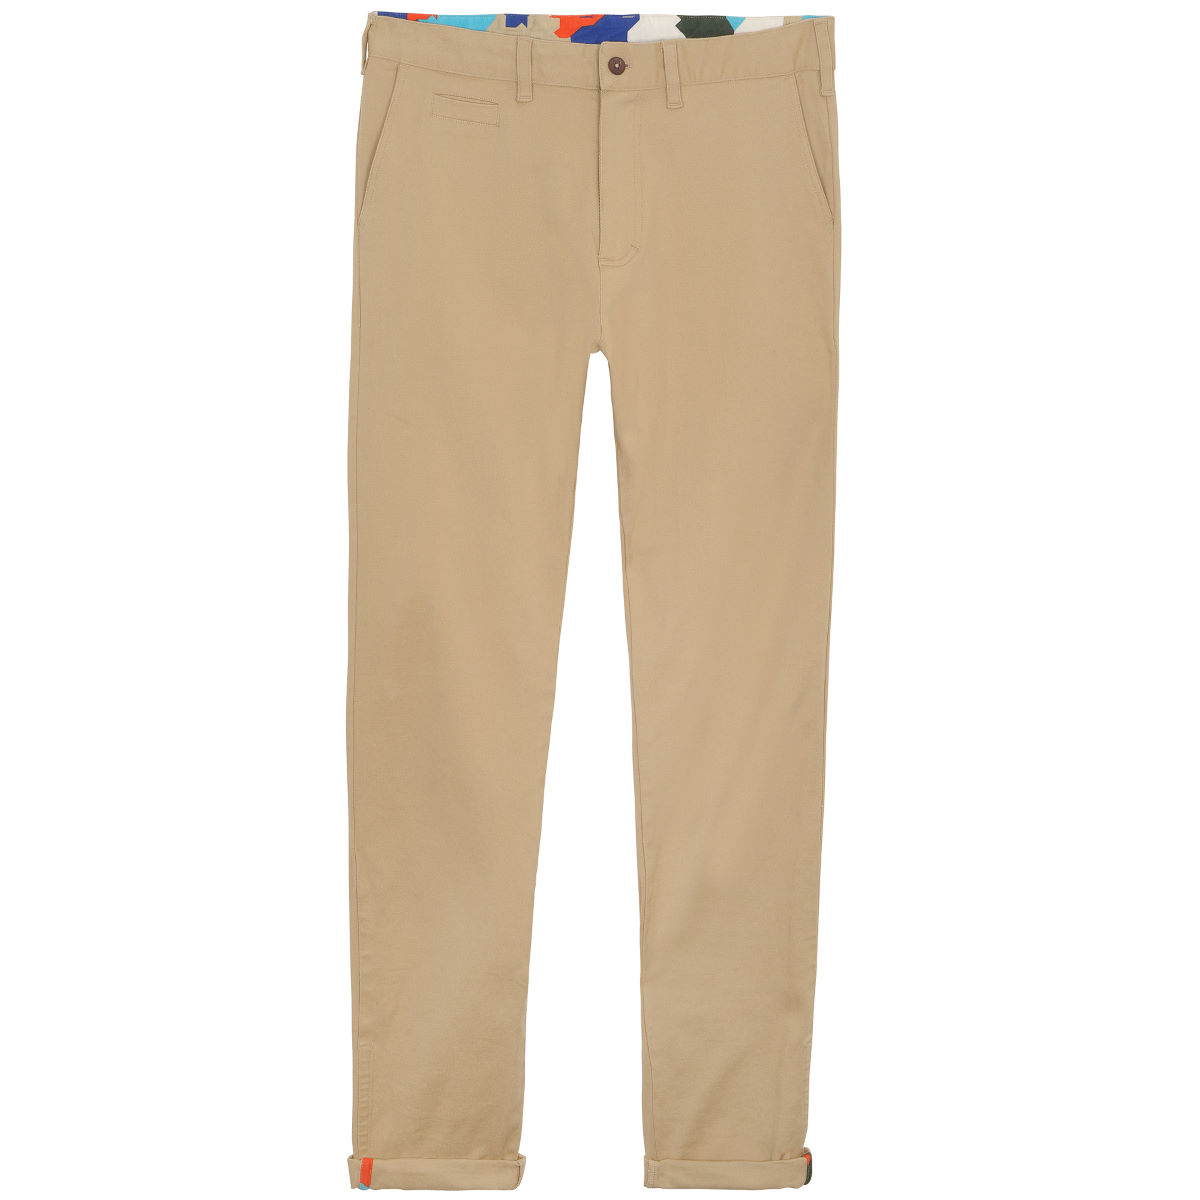 Le Coq Sportif Therain Cycle Trousers